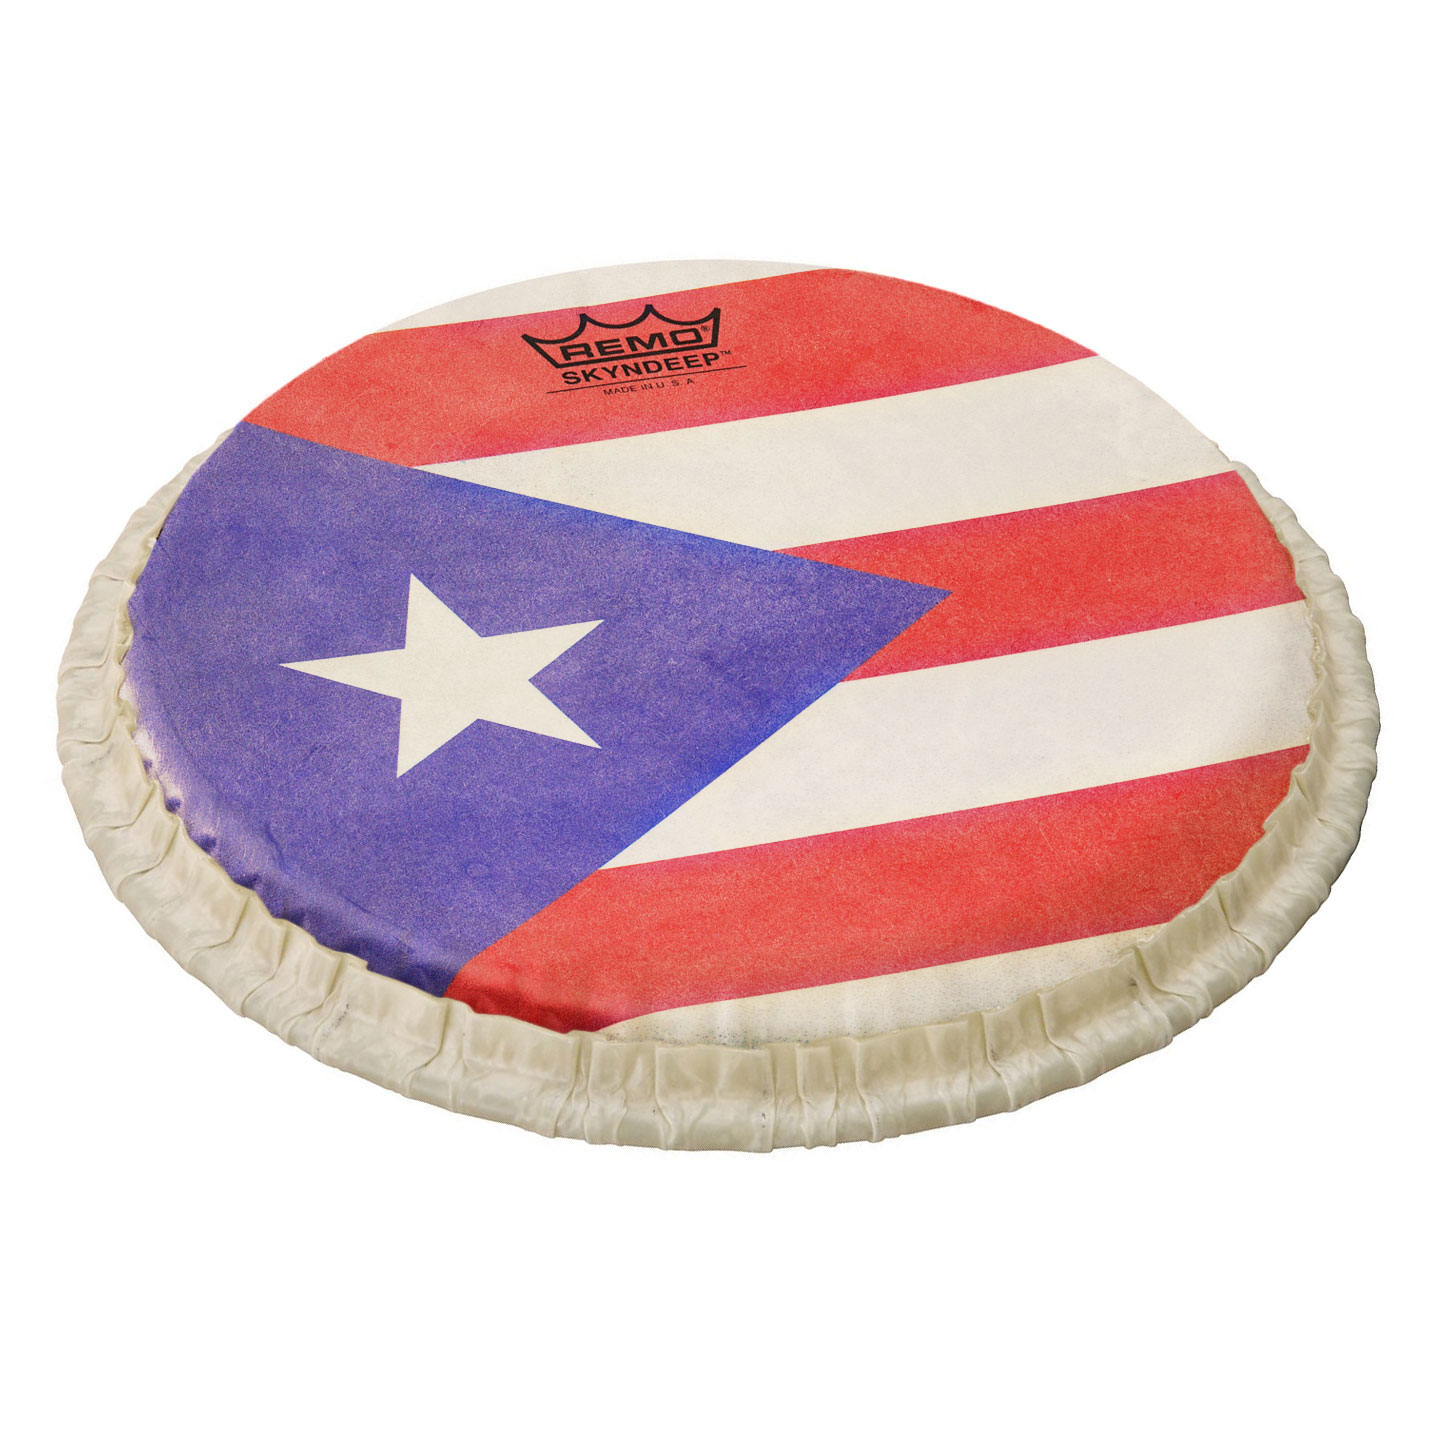 "Remo 7.15"" R-Series Skyndeep Bongo Drum Head with Puerto Rican Flag Graphic"